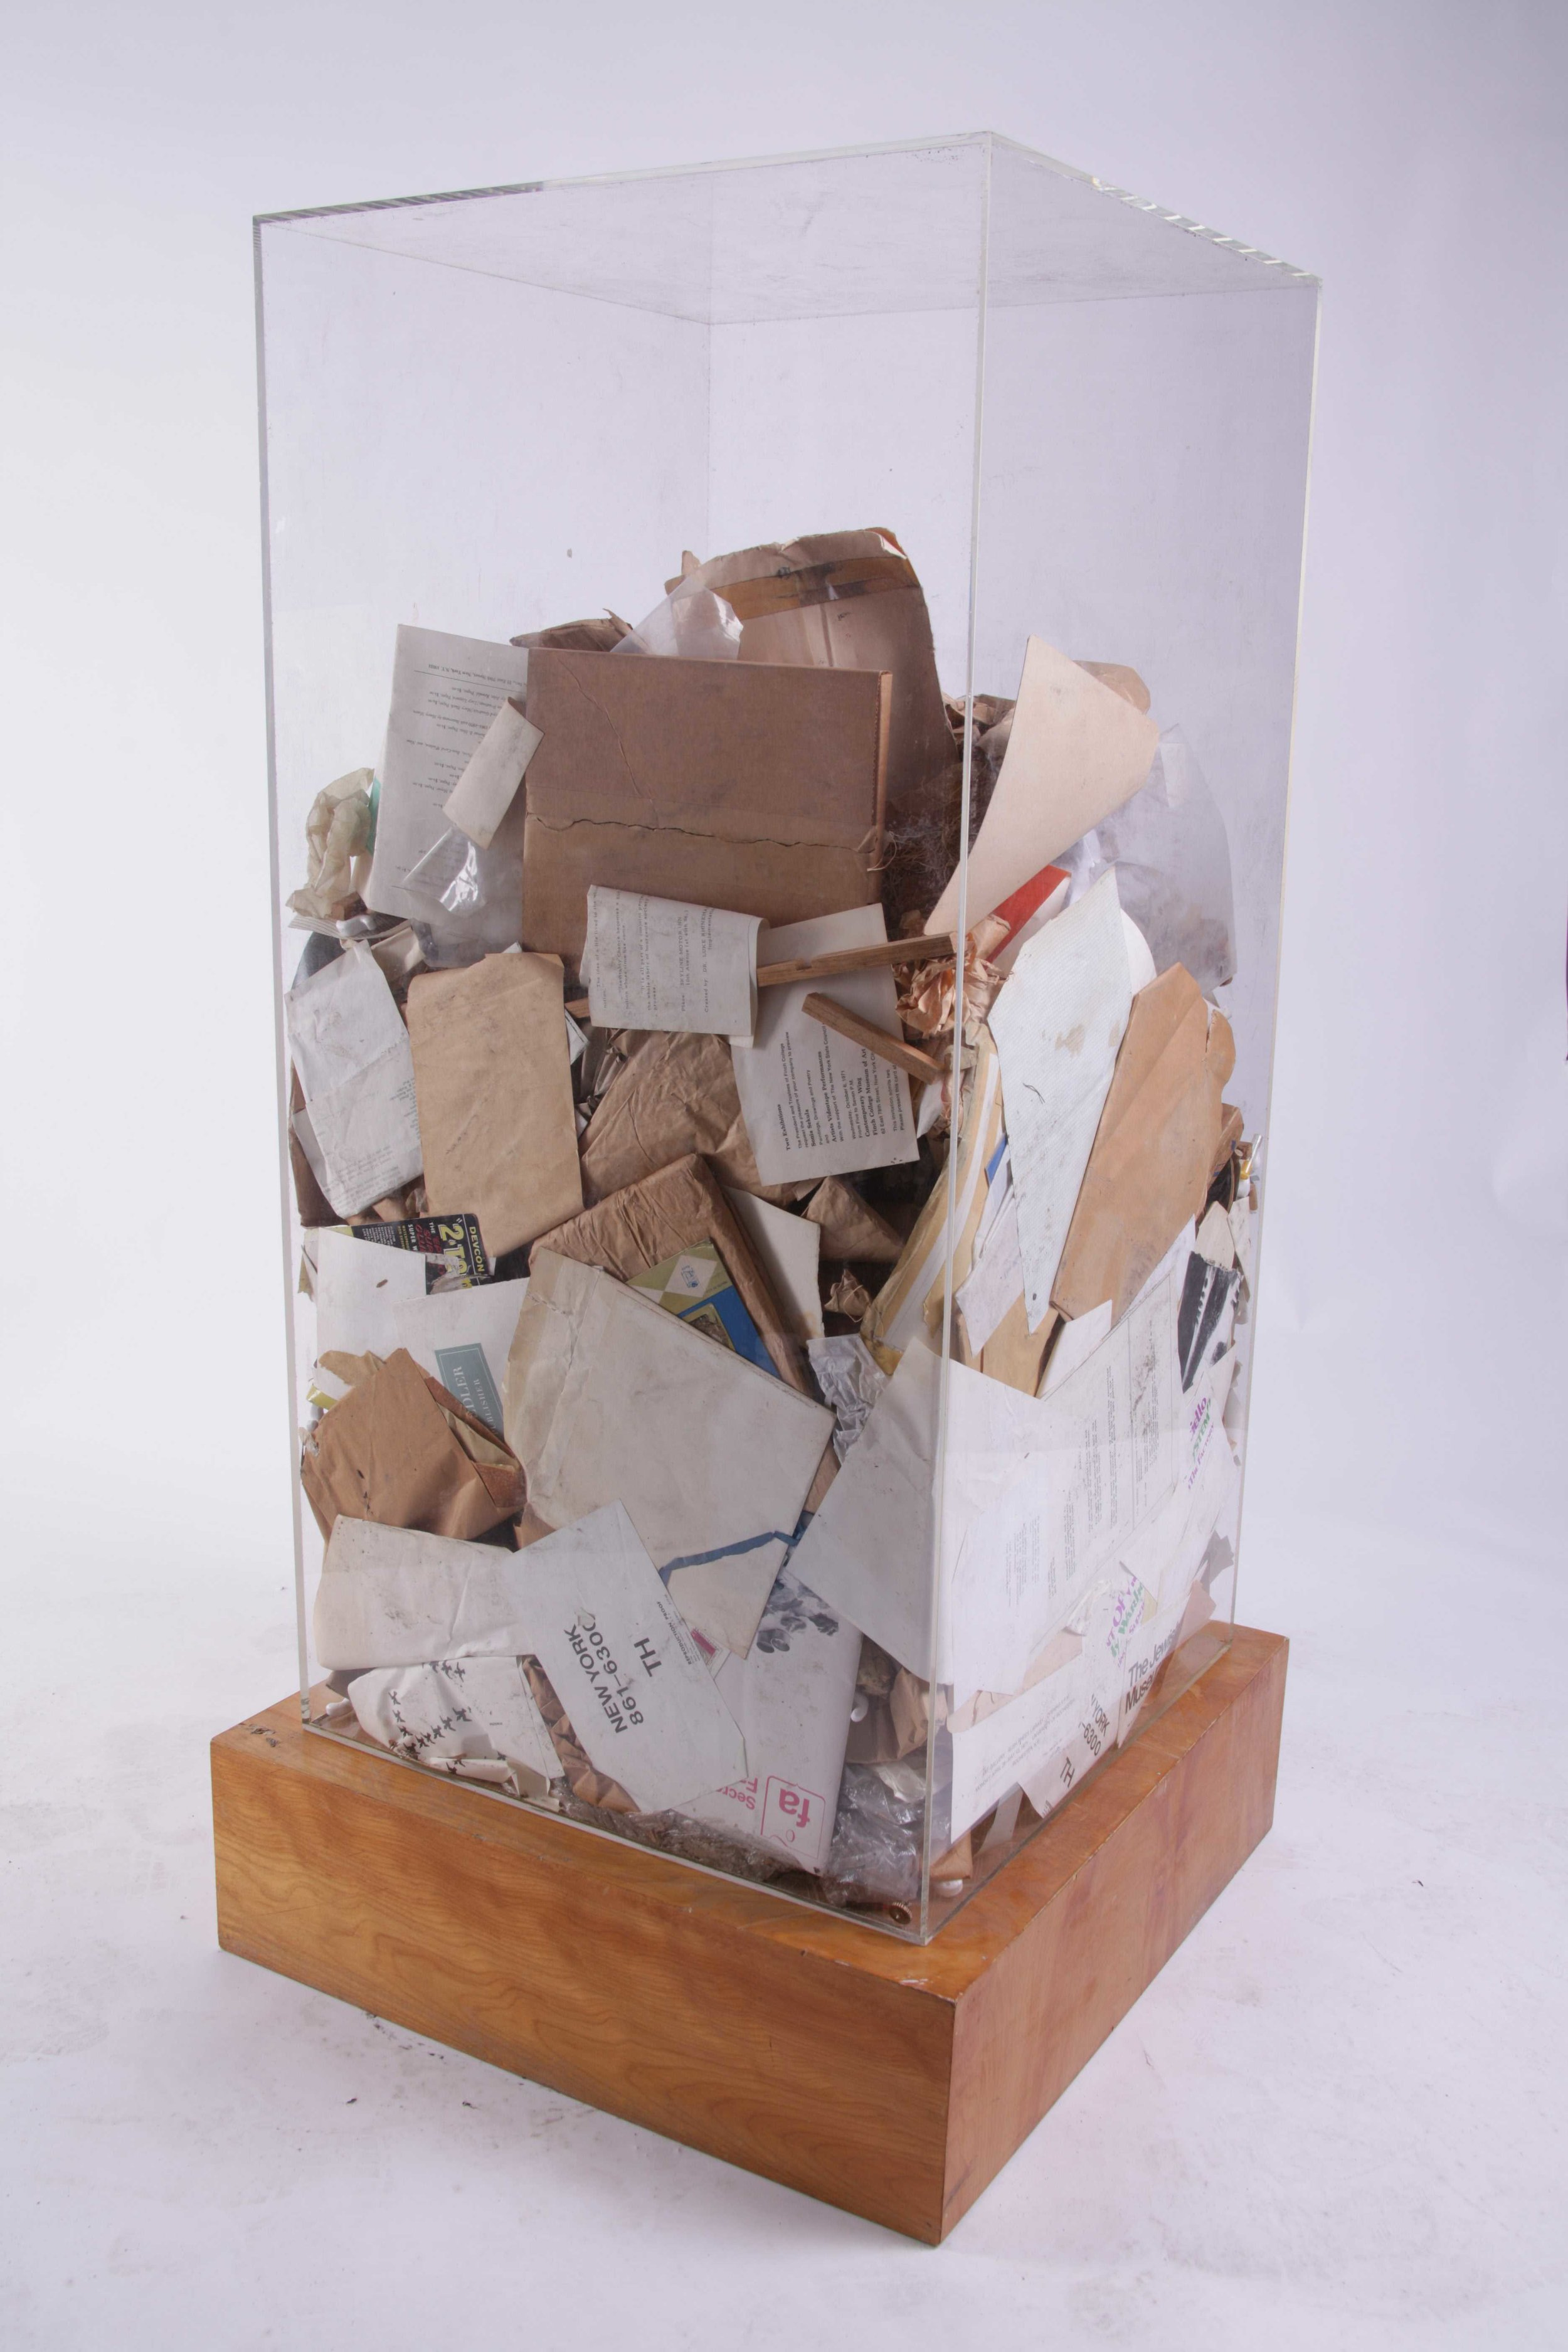 Arman. Sol Lewitt's Refuse (1970) This work is recorded in the Arman Studio Archives New York under number: APA# 8017.70.00. Courtesy: Leila Heller Gallery